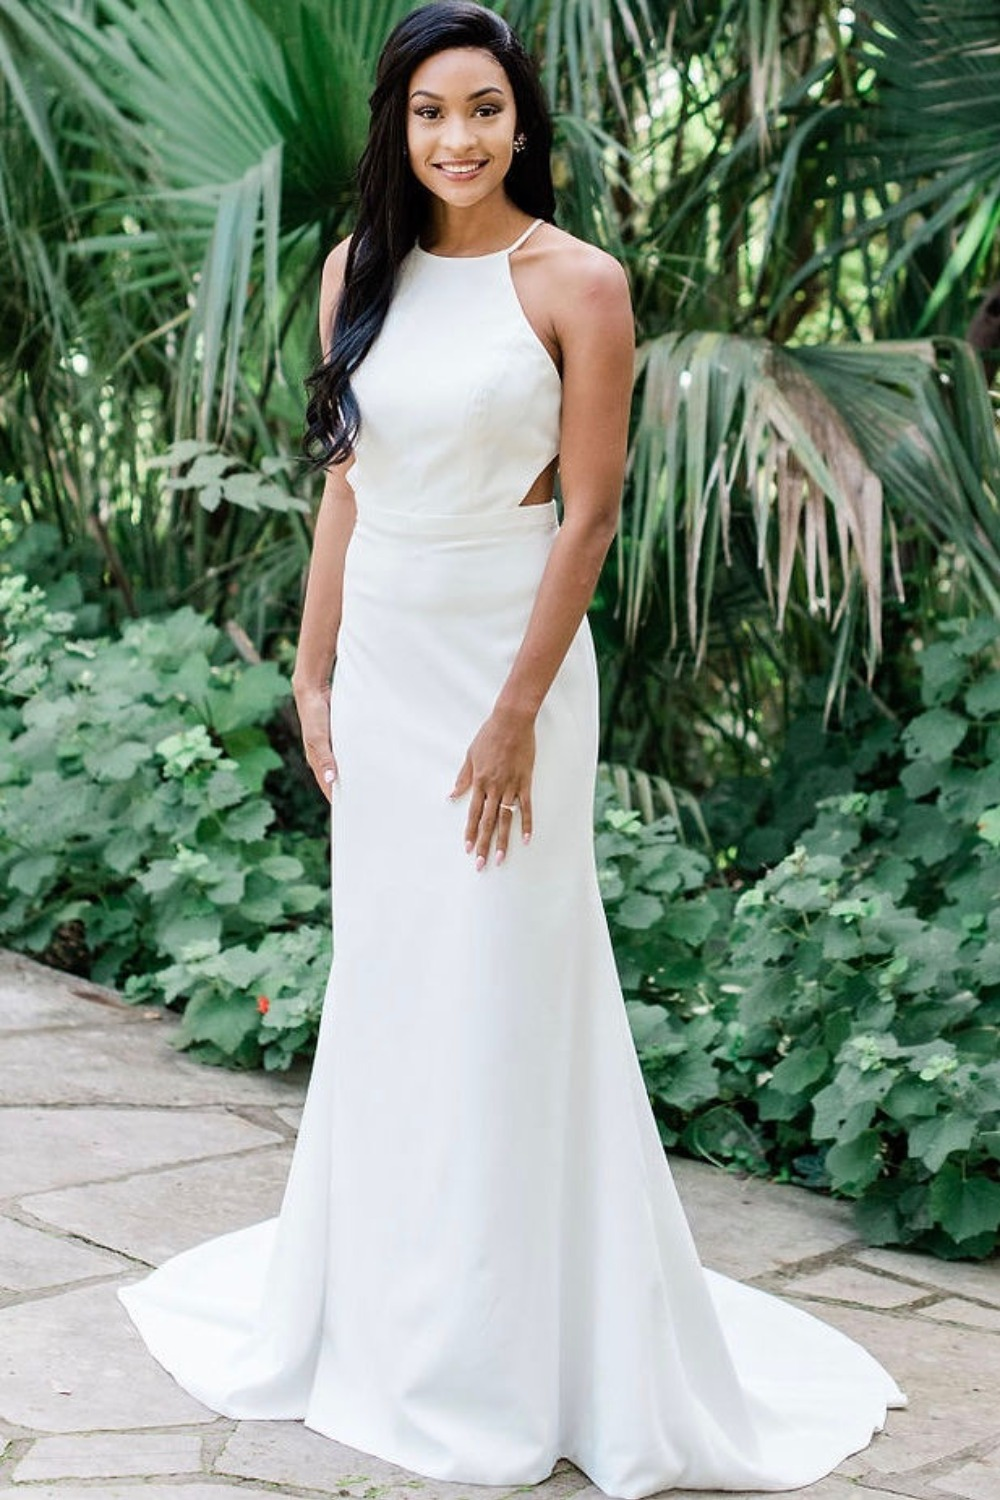 Revelry Launches Its First-Ever Bridal Collection